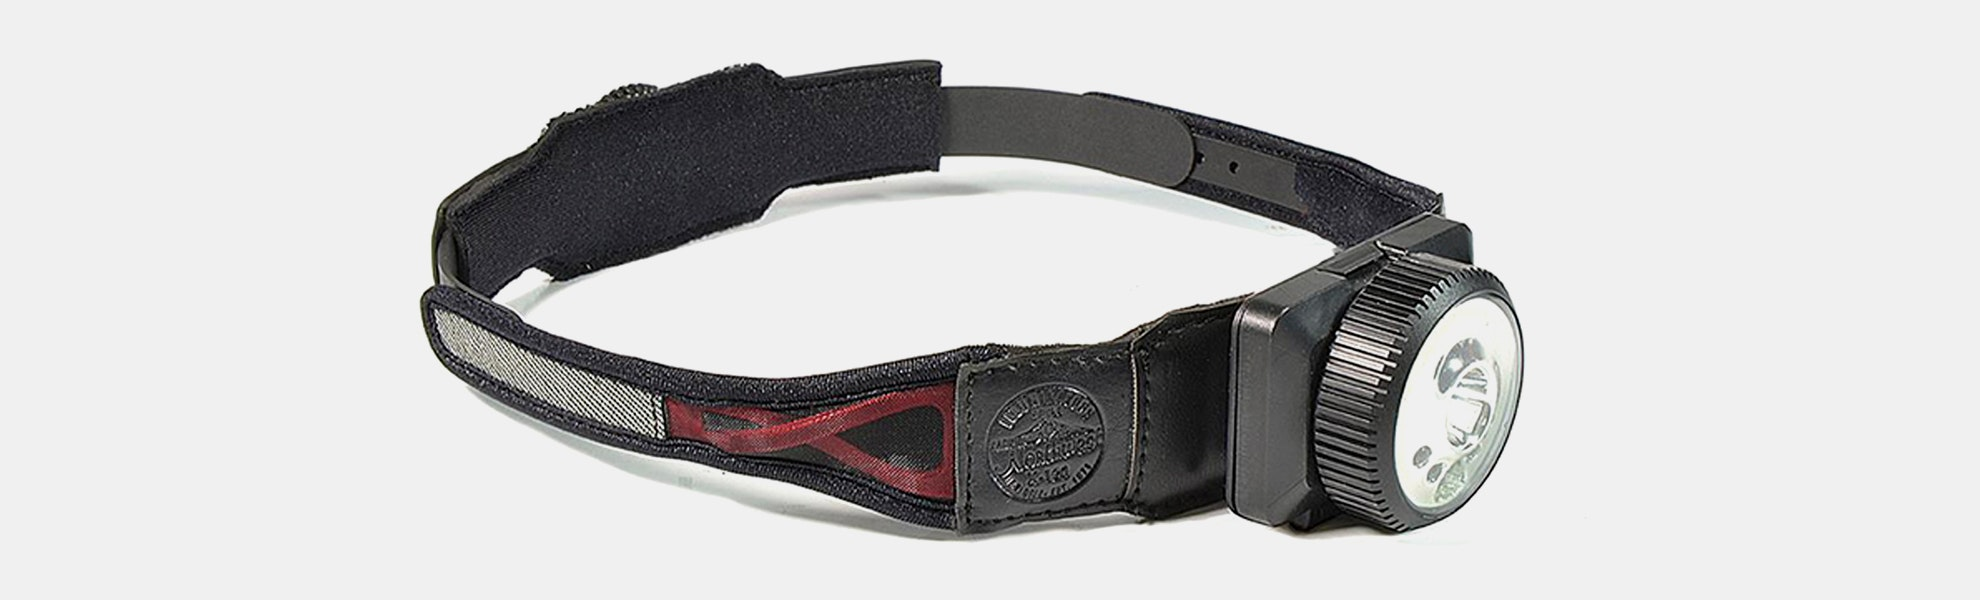 UCO X-120 R Rechargeable X-ACT Headlamp